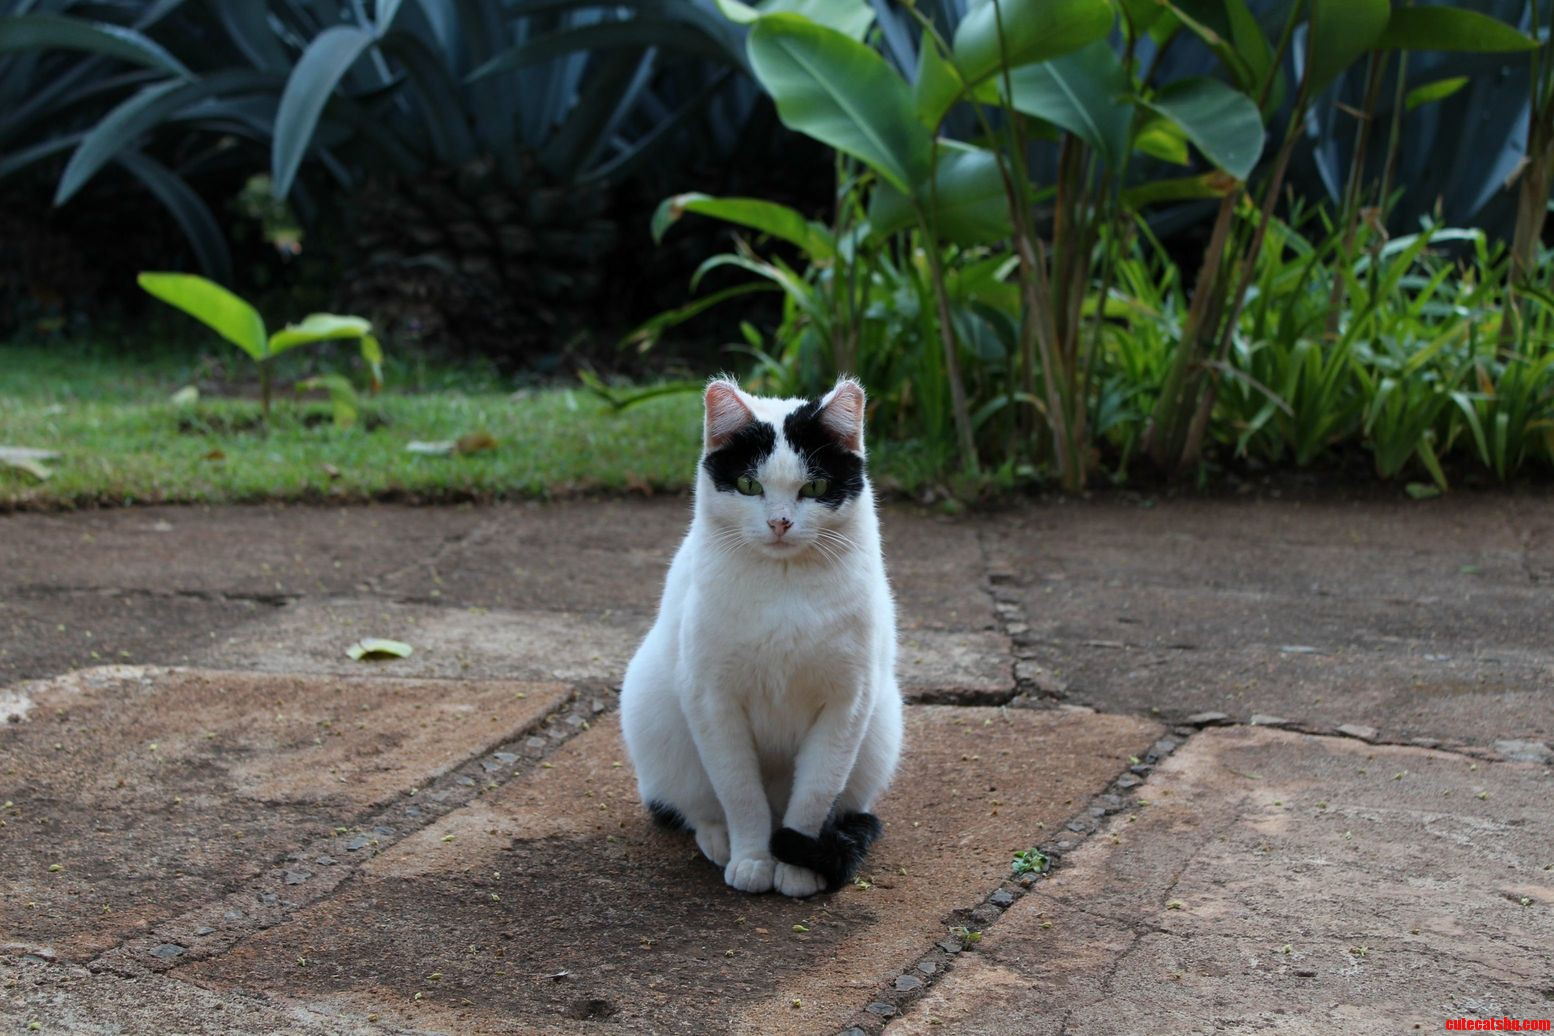 A Beautiful Cat That I Saw In Tanzania.